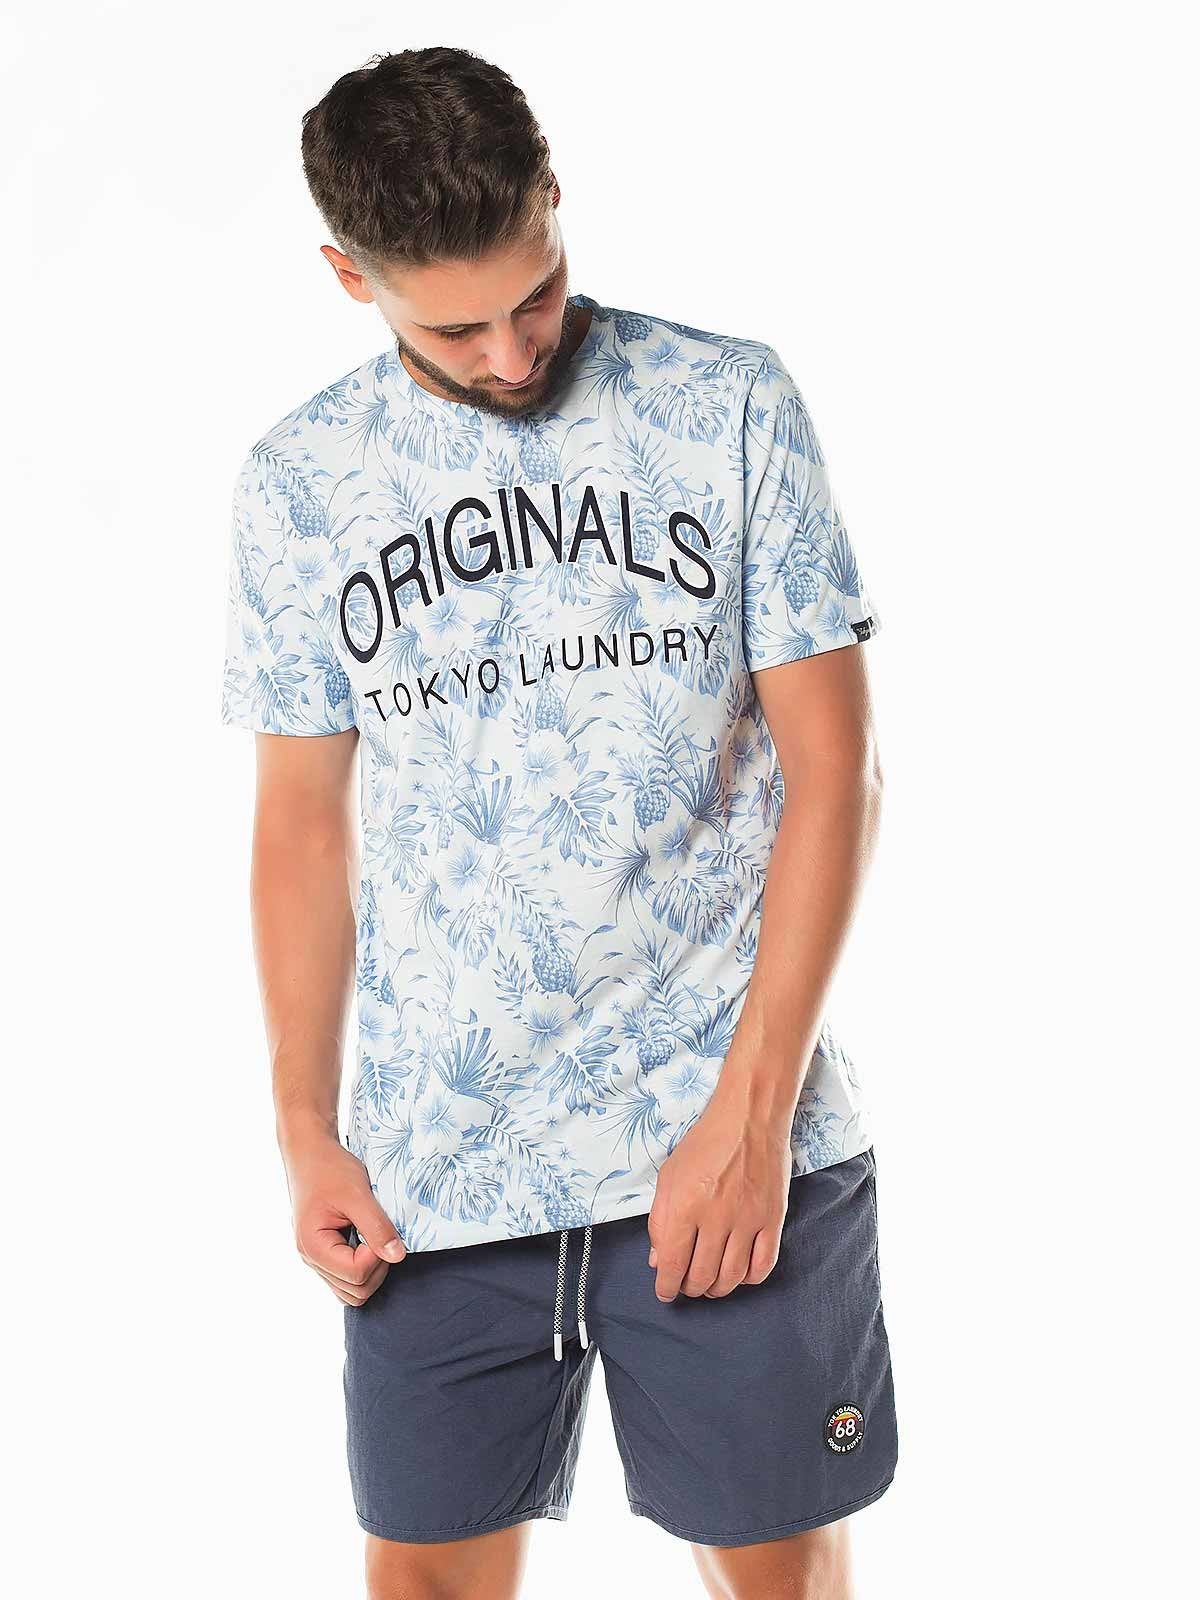 Camiseta floral Originals